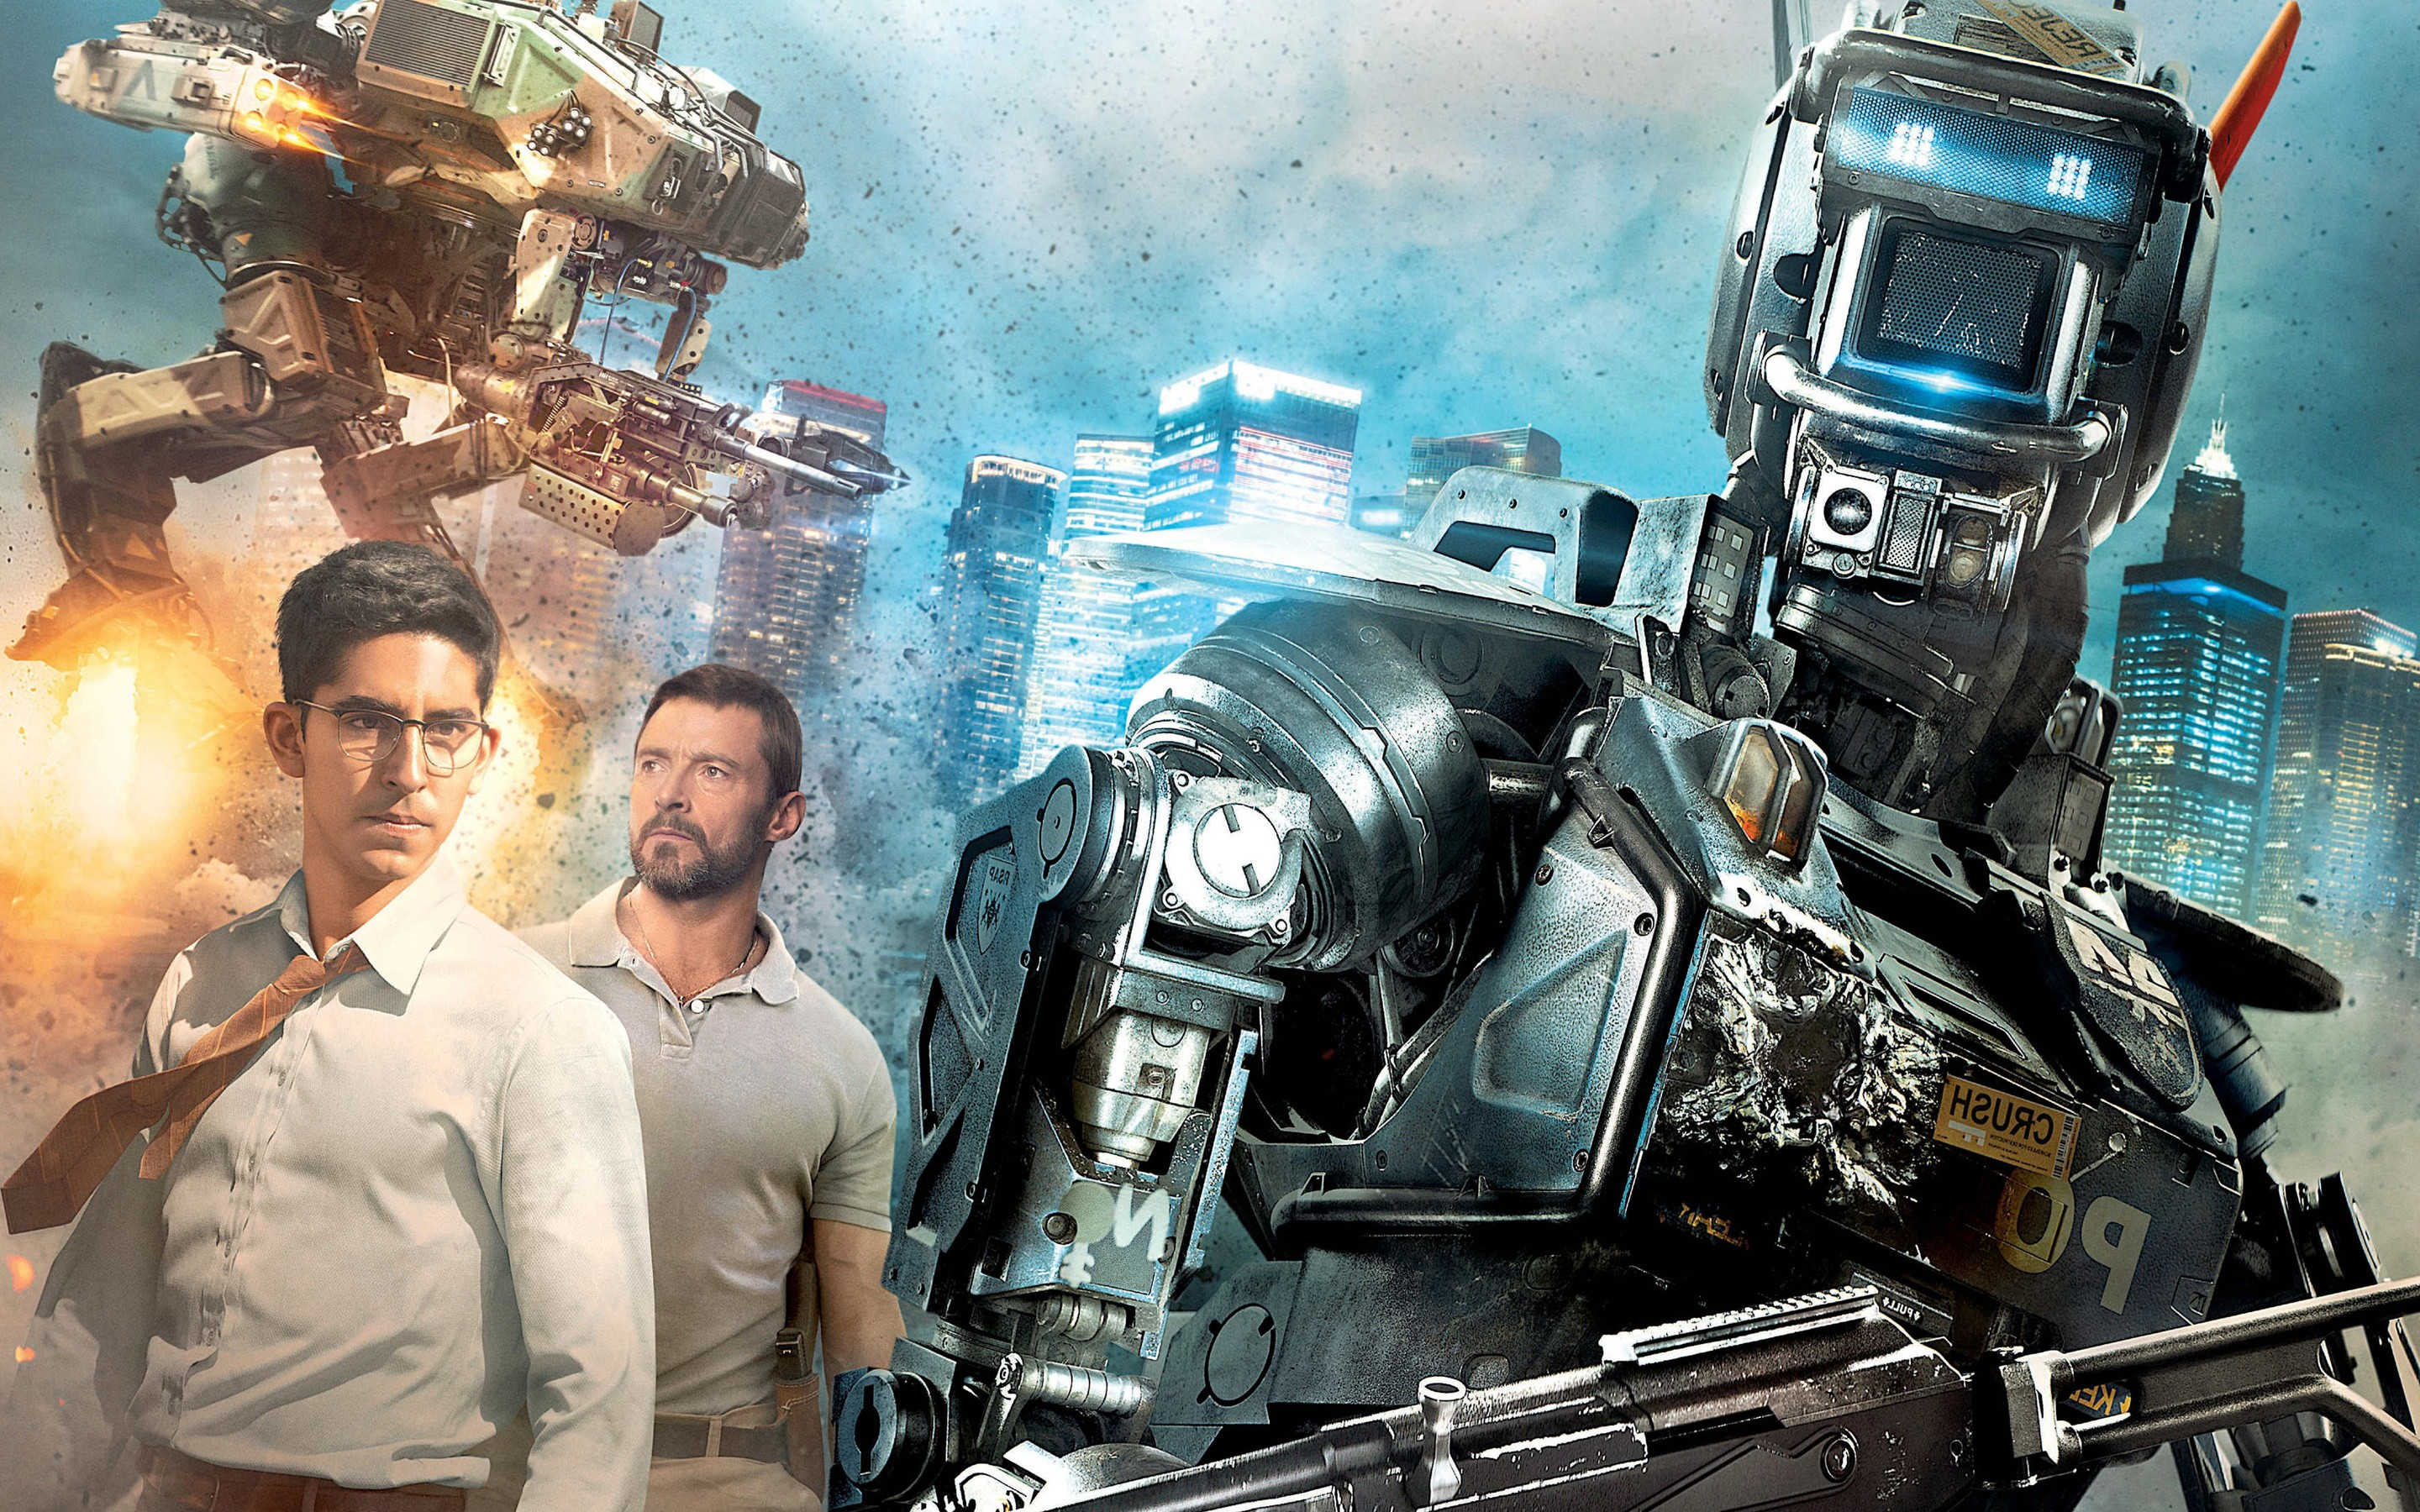 2048x2048 Anthem Ipad Air Hd 4k Wallpapers Images: 2048x2048 Chappie Movie HD Ipad Air HD 4k Wallpapers